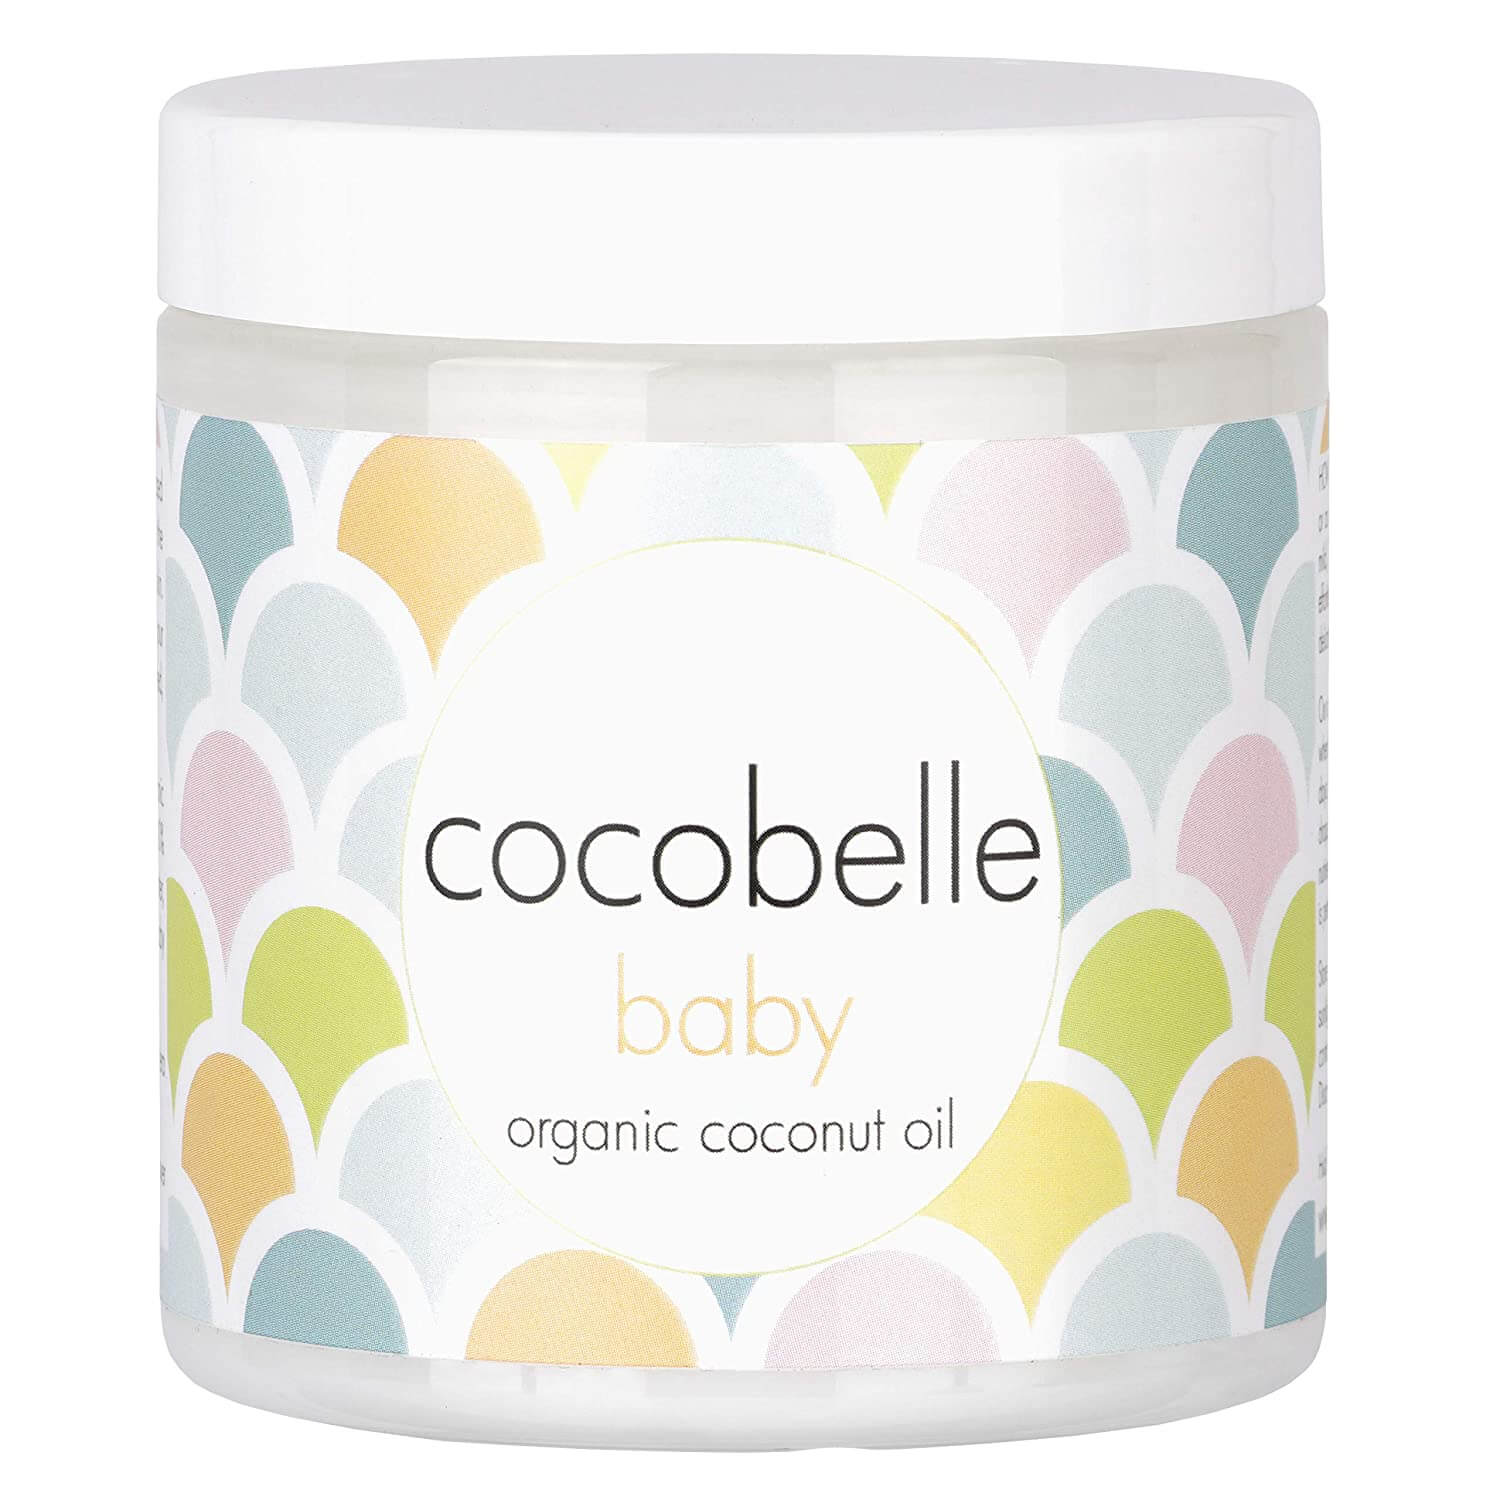 Cocobelle pure and gentle coconut oil